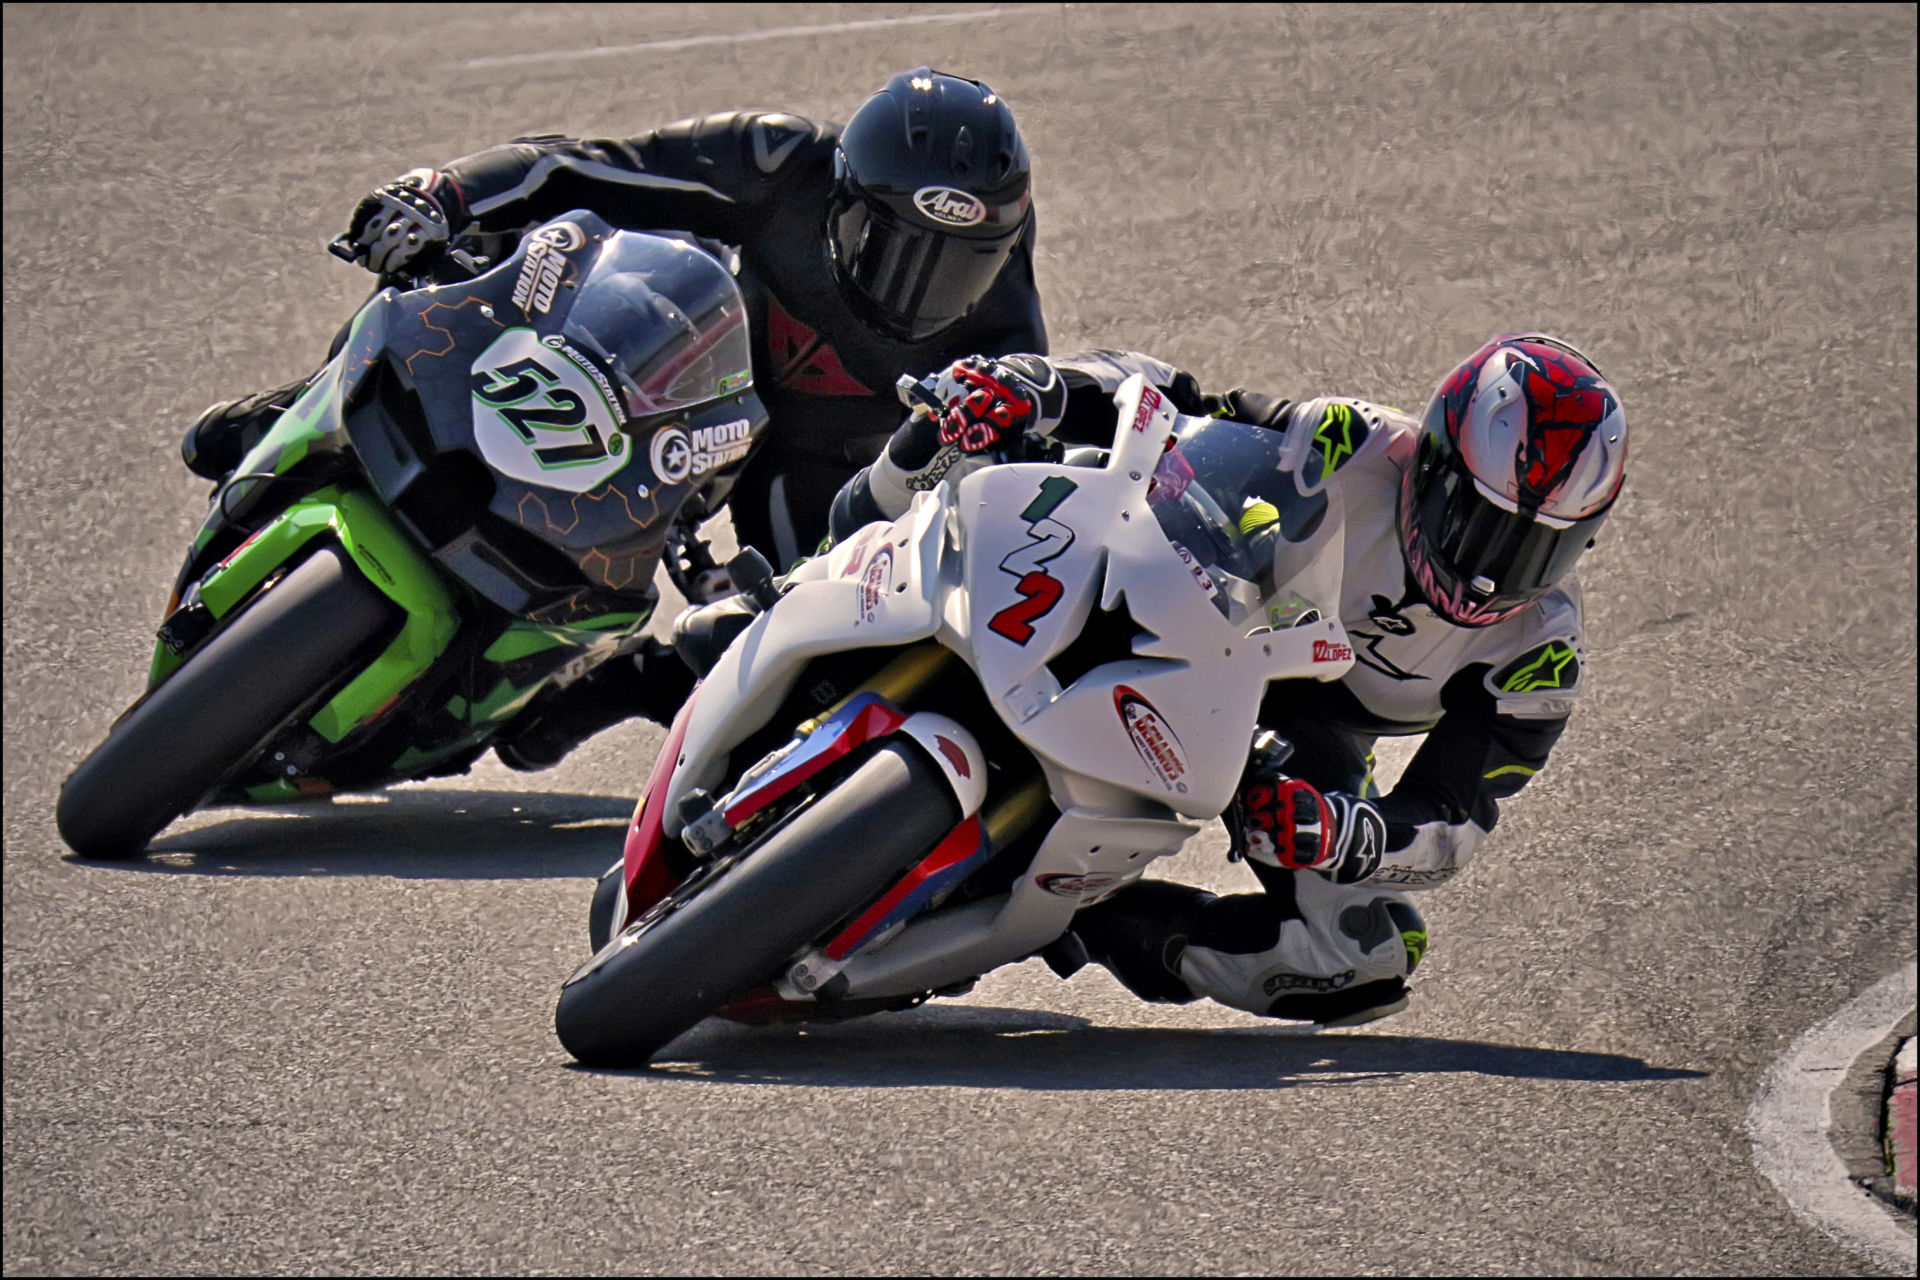 Genaro Lopez (122) fends off Jerry Hicks (527) in the final corner during Round 6 of the UtahSBA's King of the Mountain Race held at Utah Motorsports Campus' East Track. Photo by Steve Midgley, courtesy UtahSBA.